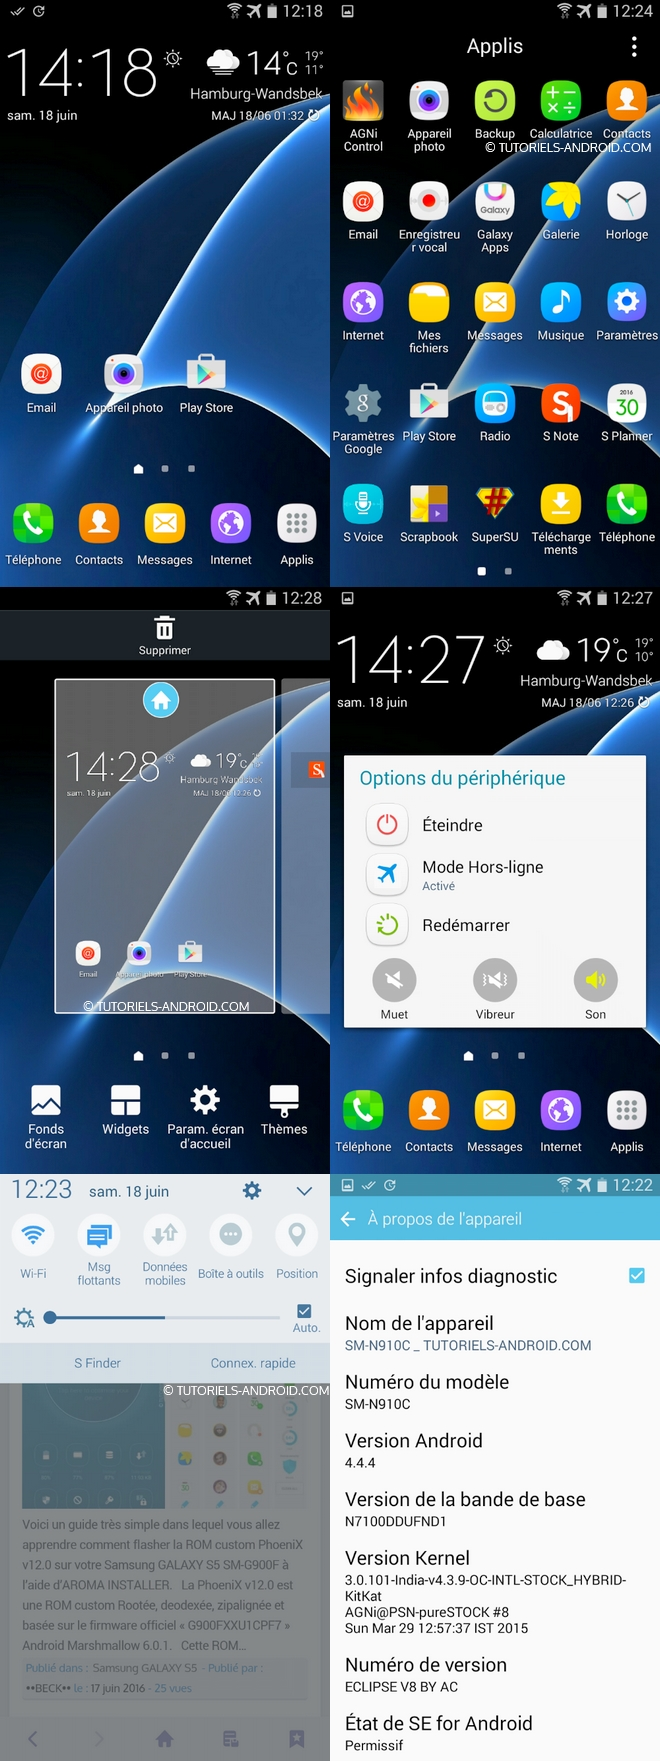 eclipse-v8-galaxy-note2-gt-n7100_tutoriels-android.com